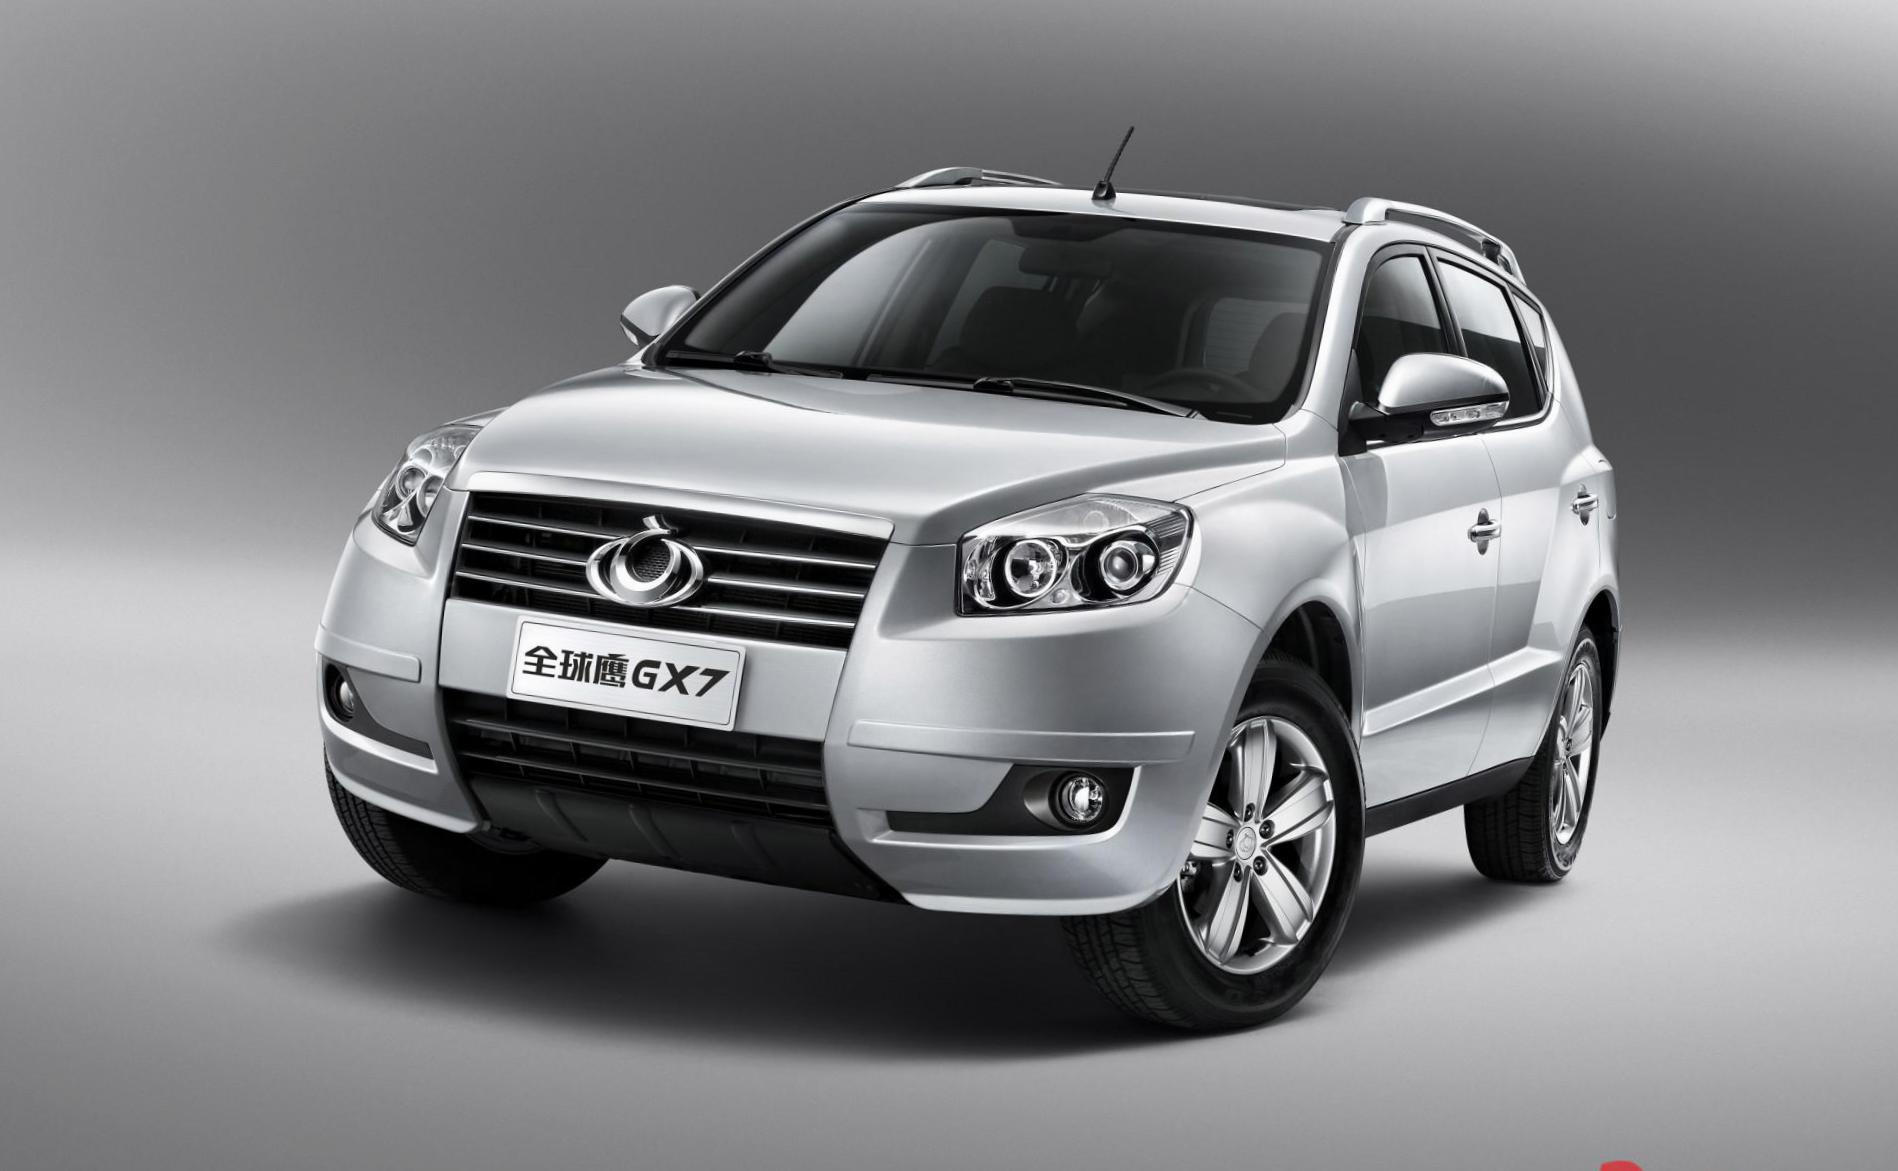 GX7 Geely reviews 2008